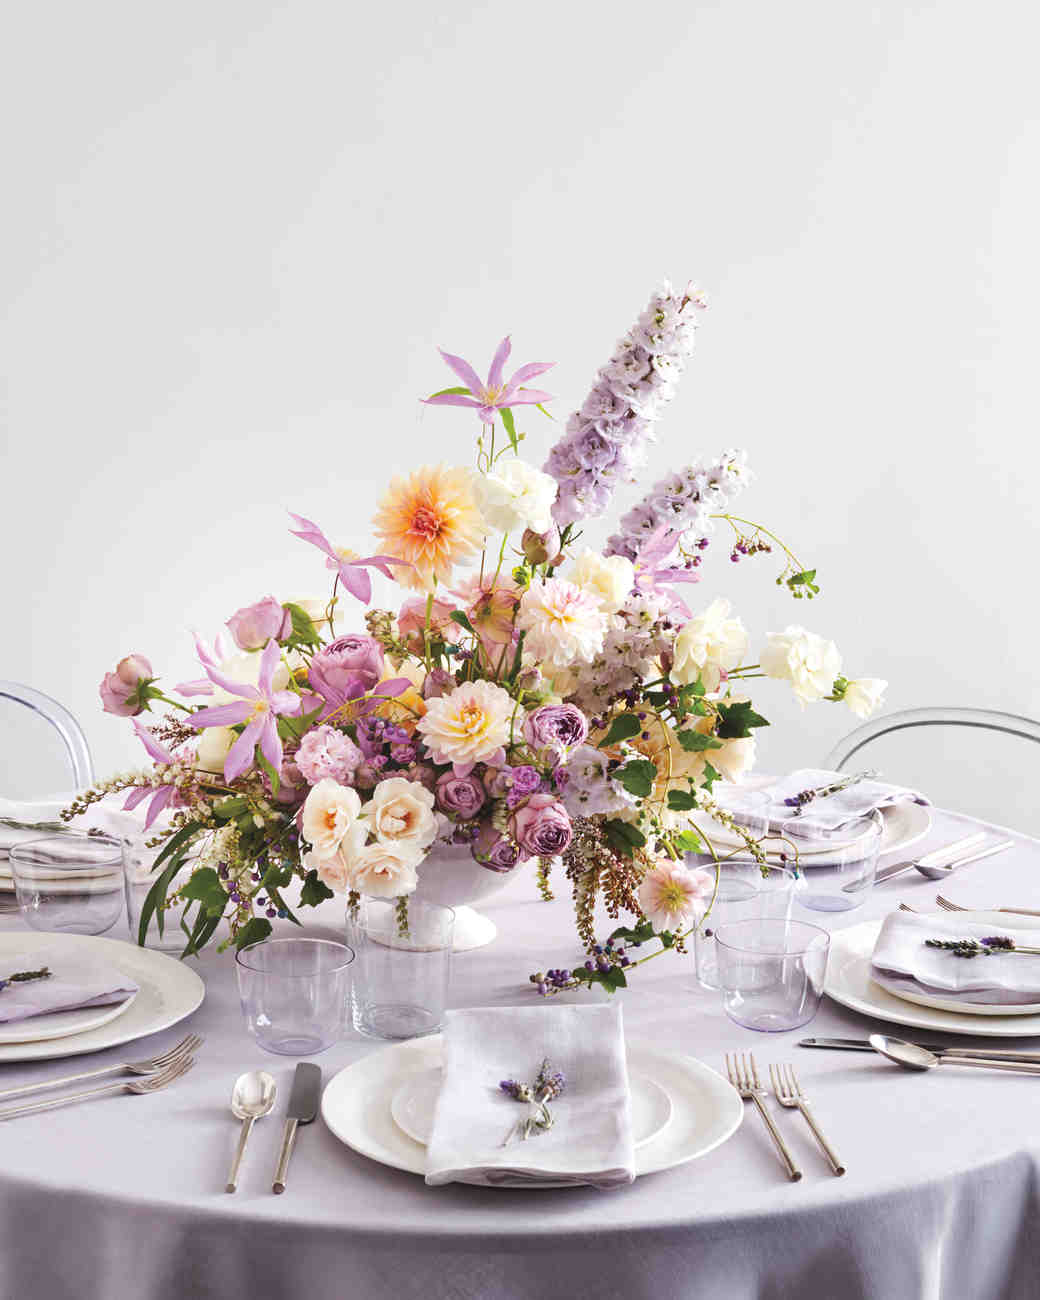 Wedding Flower Arrangements: 23 DIY Wedding Centerpieces We Love